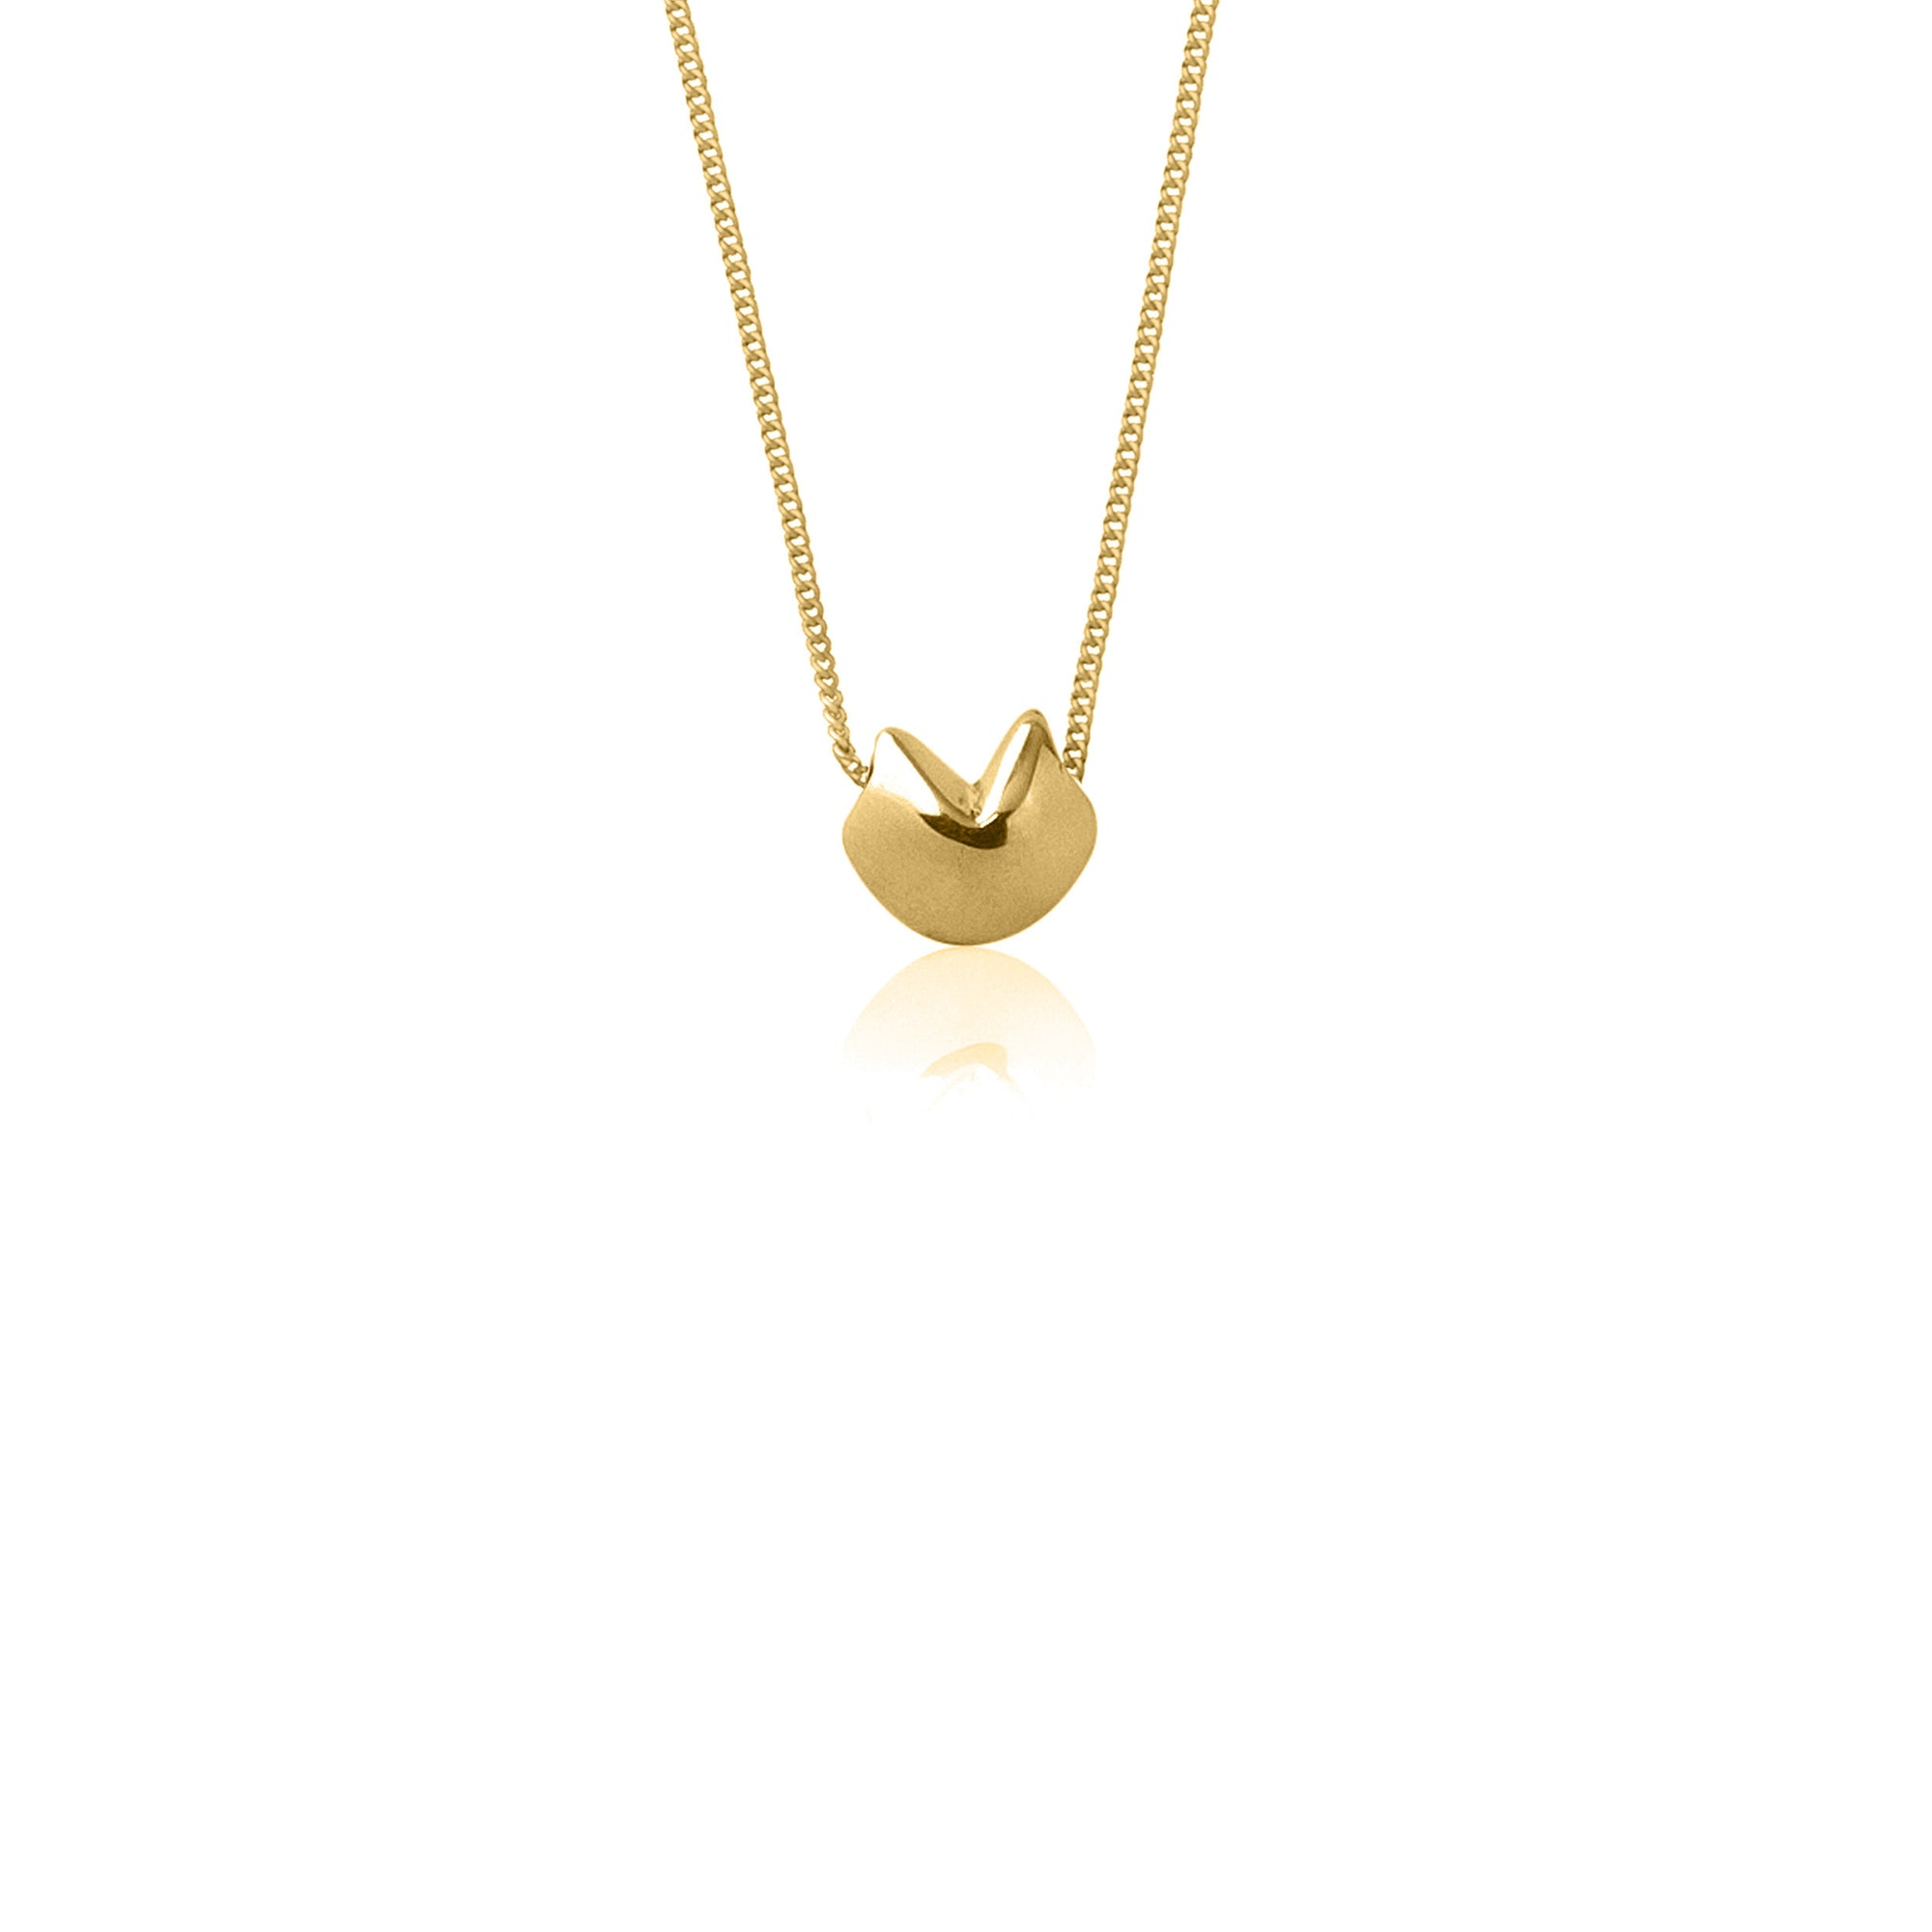 Awestruck in Luck Necklace (Gold)